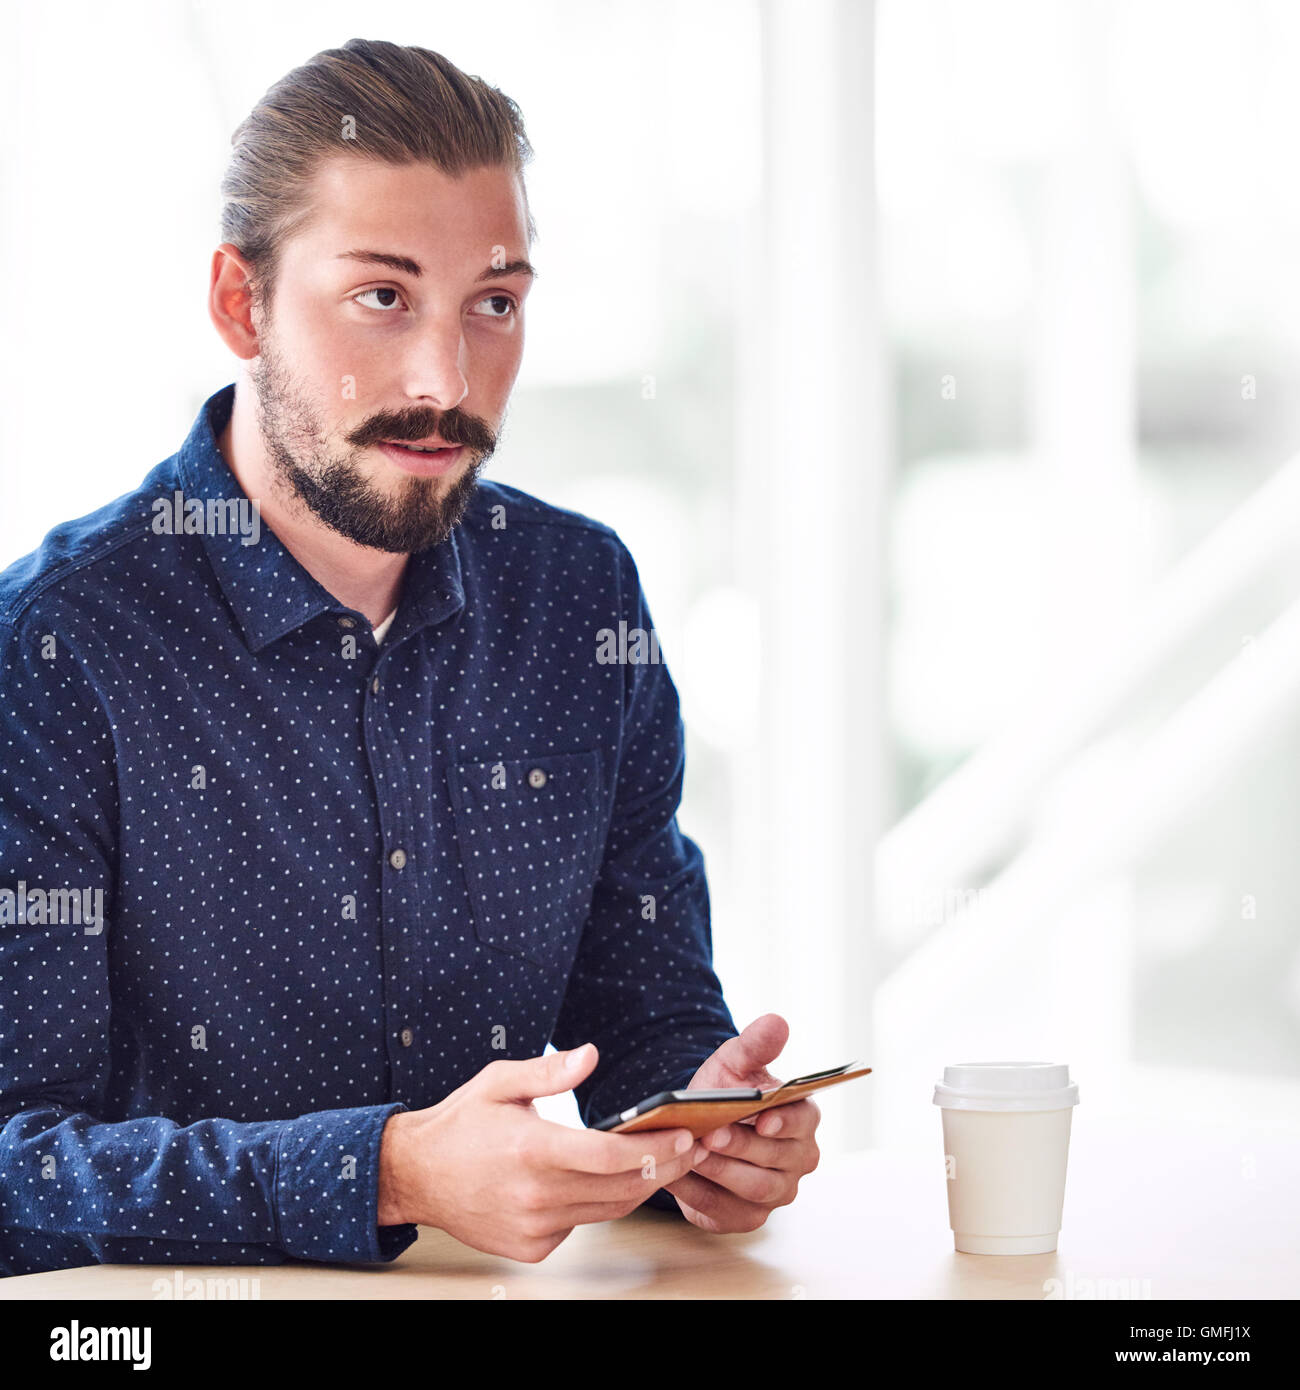 long haired handsome man looking up while holding phone - Stock Image